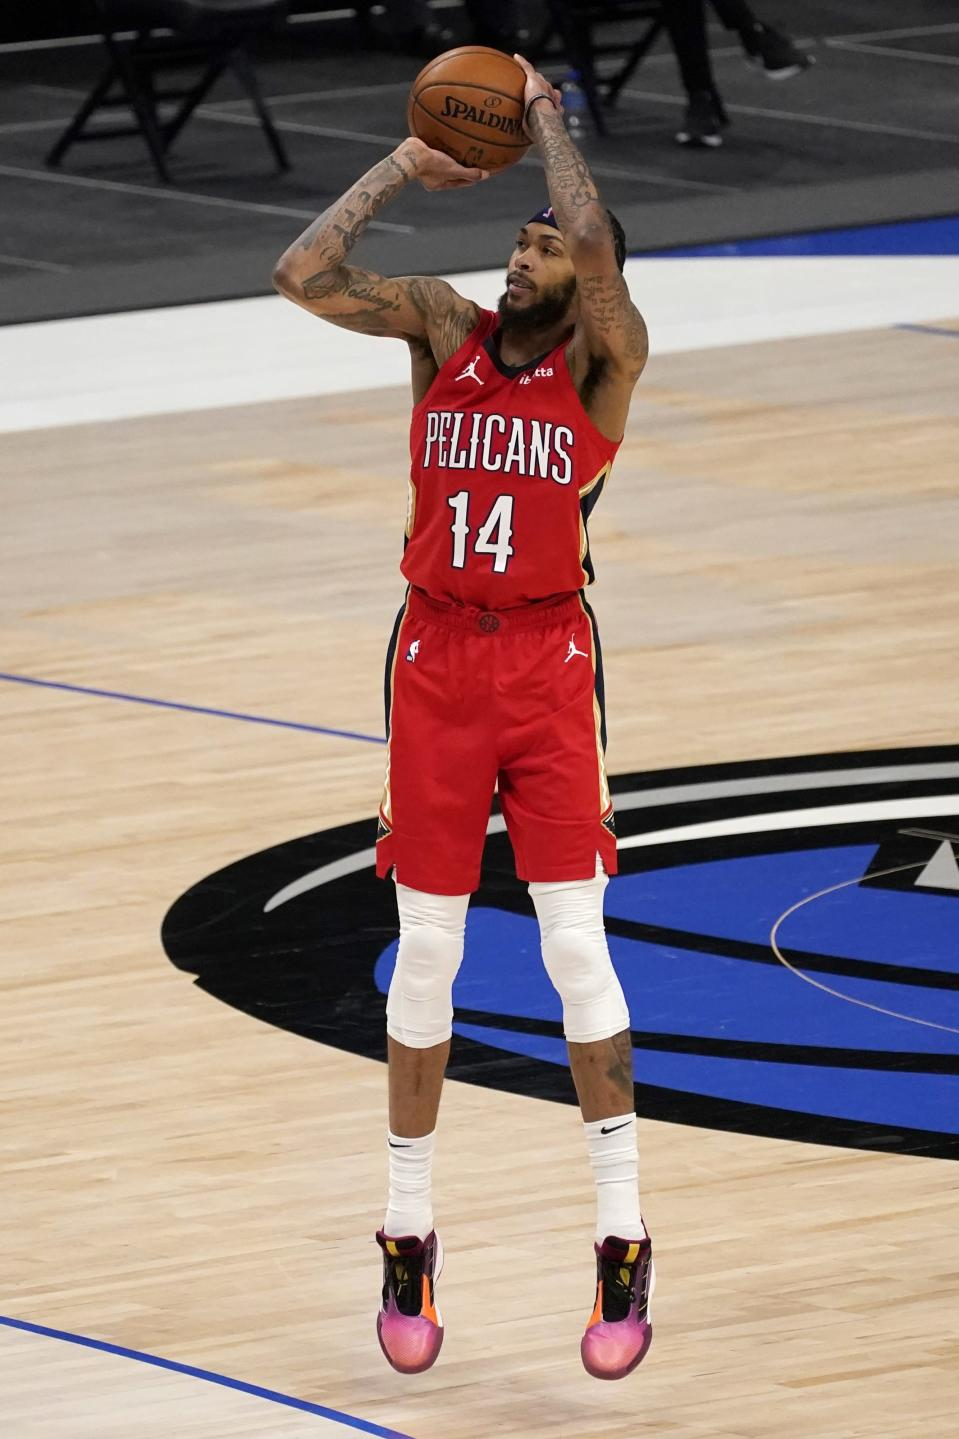 New Orleans Pelicans' Brandon Ingram (14) attempts a 3-point basket during the second half of the team's NBA basketball game against the Dallas Mavericks in Dallas, Friday, Feb. 12, 2021. (AP Photo/Tony Gutierrez)